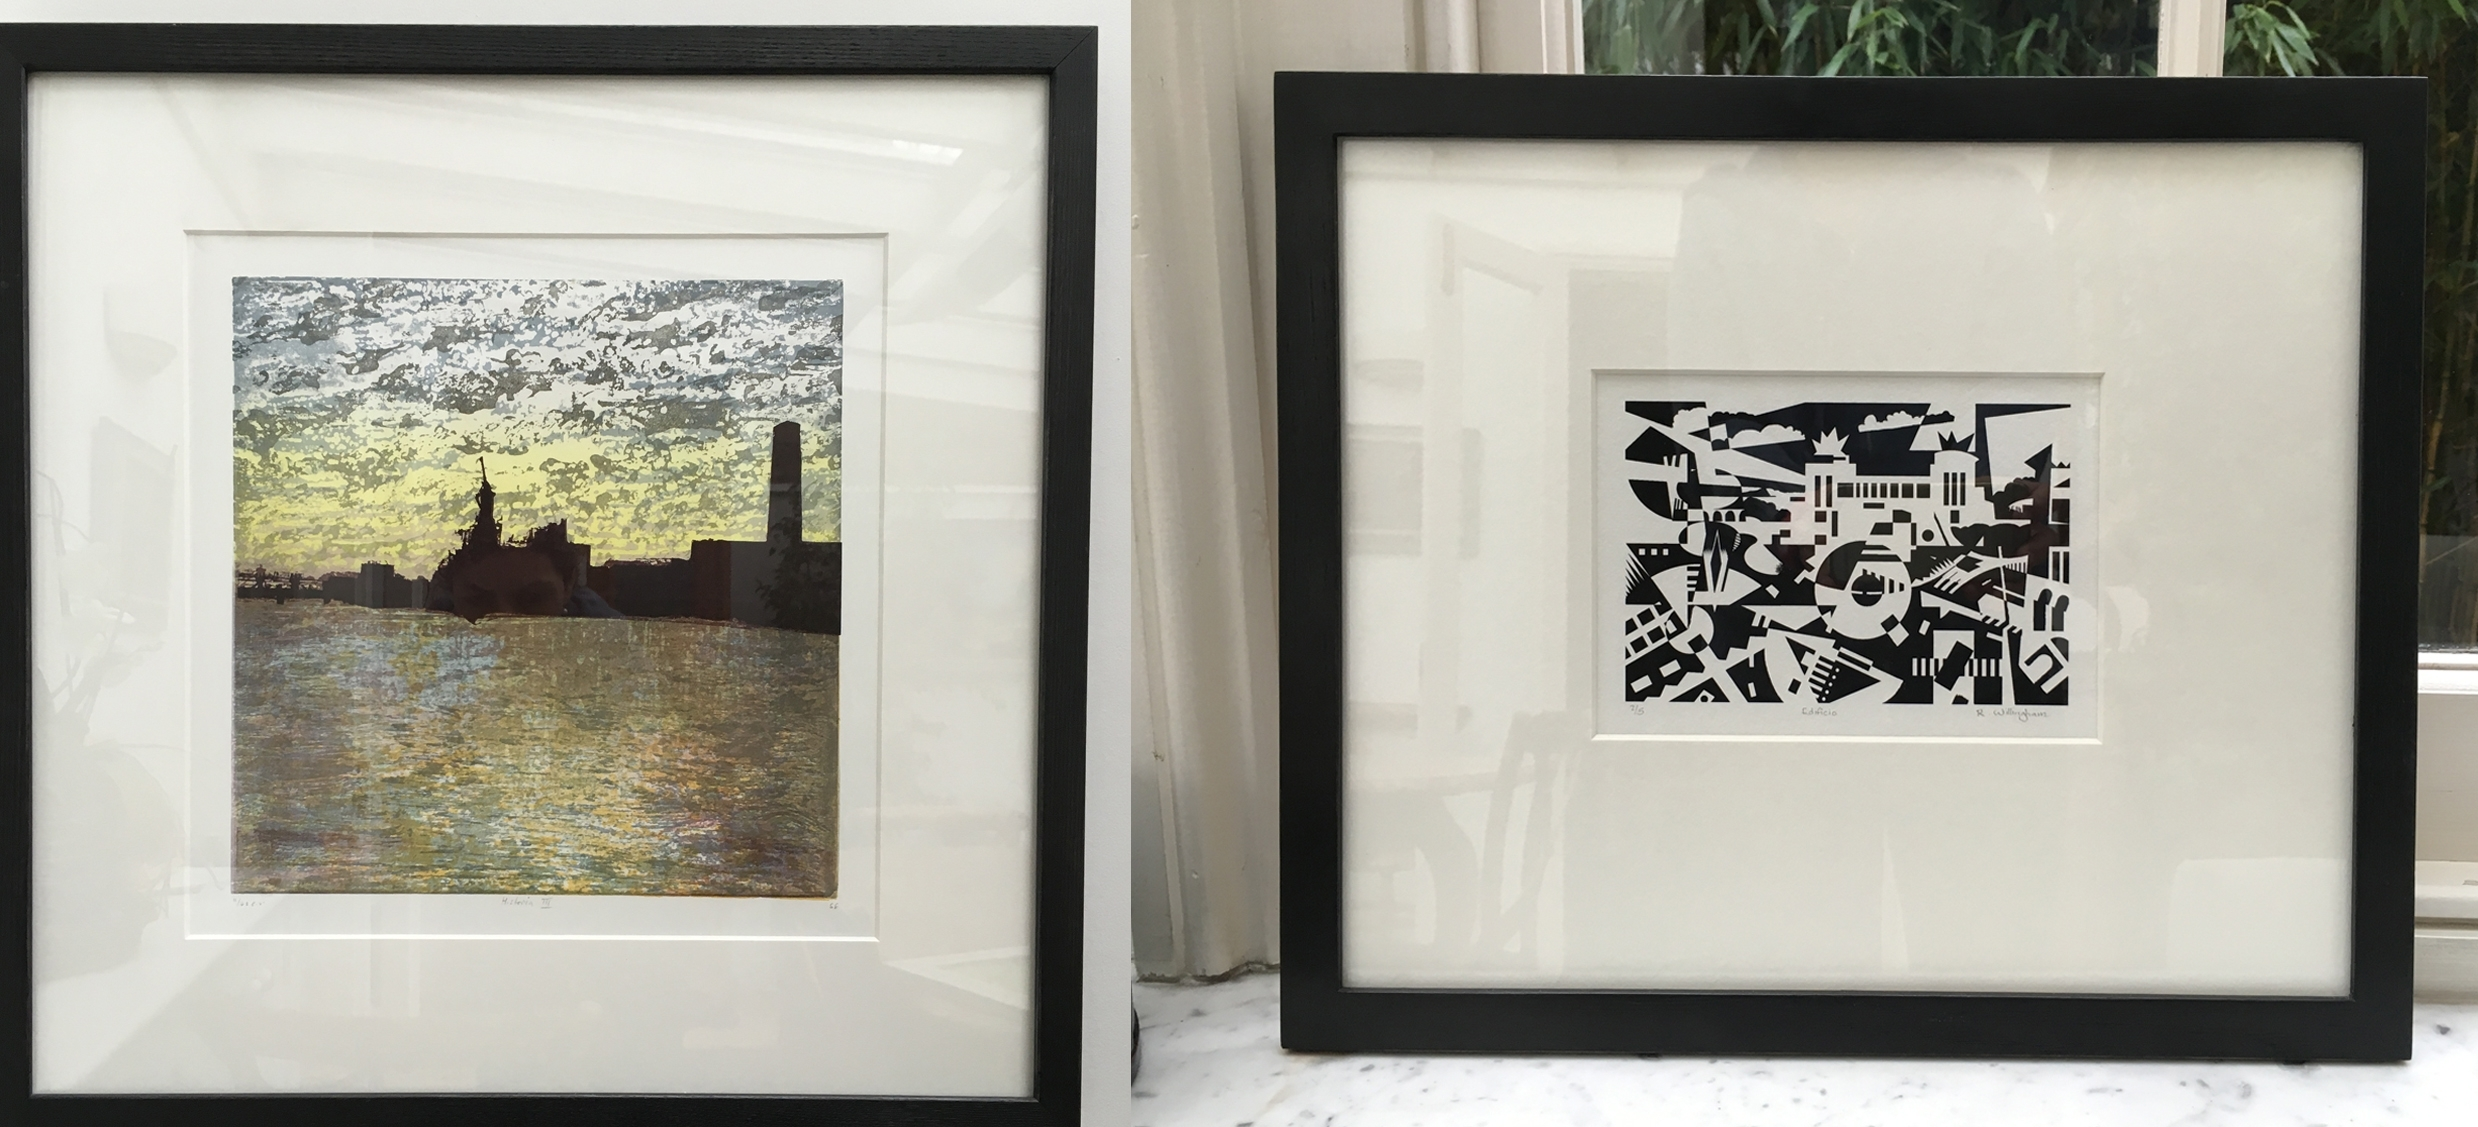 How To Frame Prints – Print Solo Regarding Recent Black Framed Art Prints (View 8 of 15)